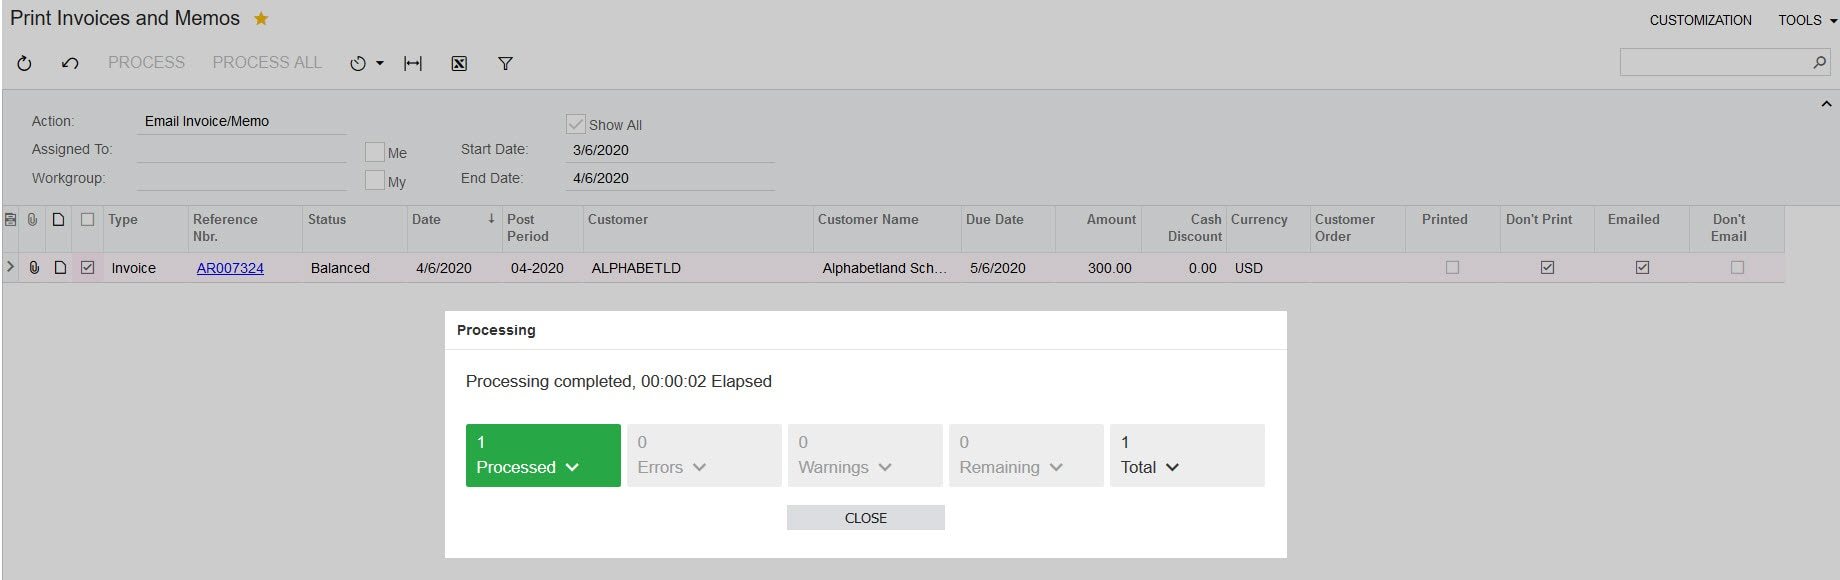 Acumatica email invoices where don't email is null